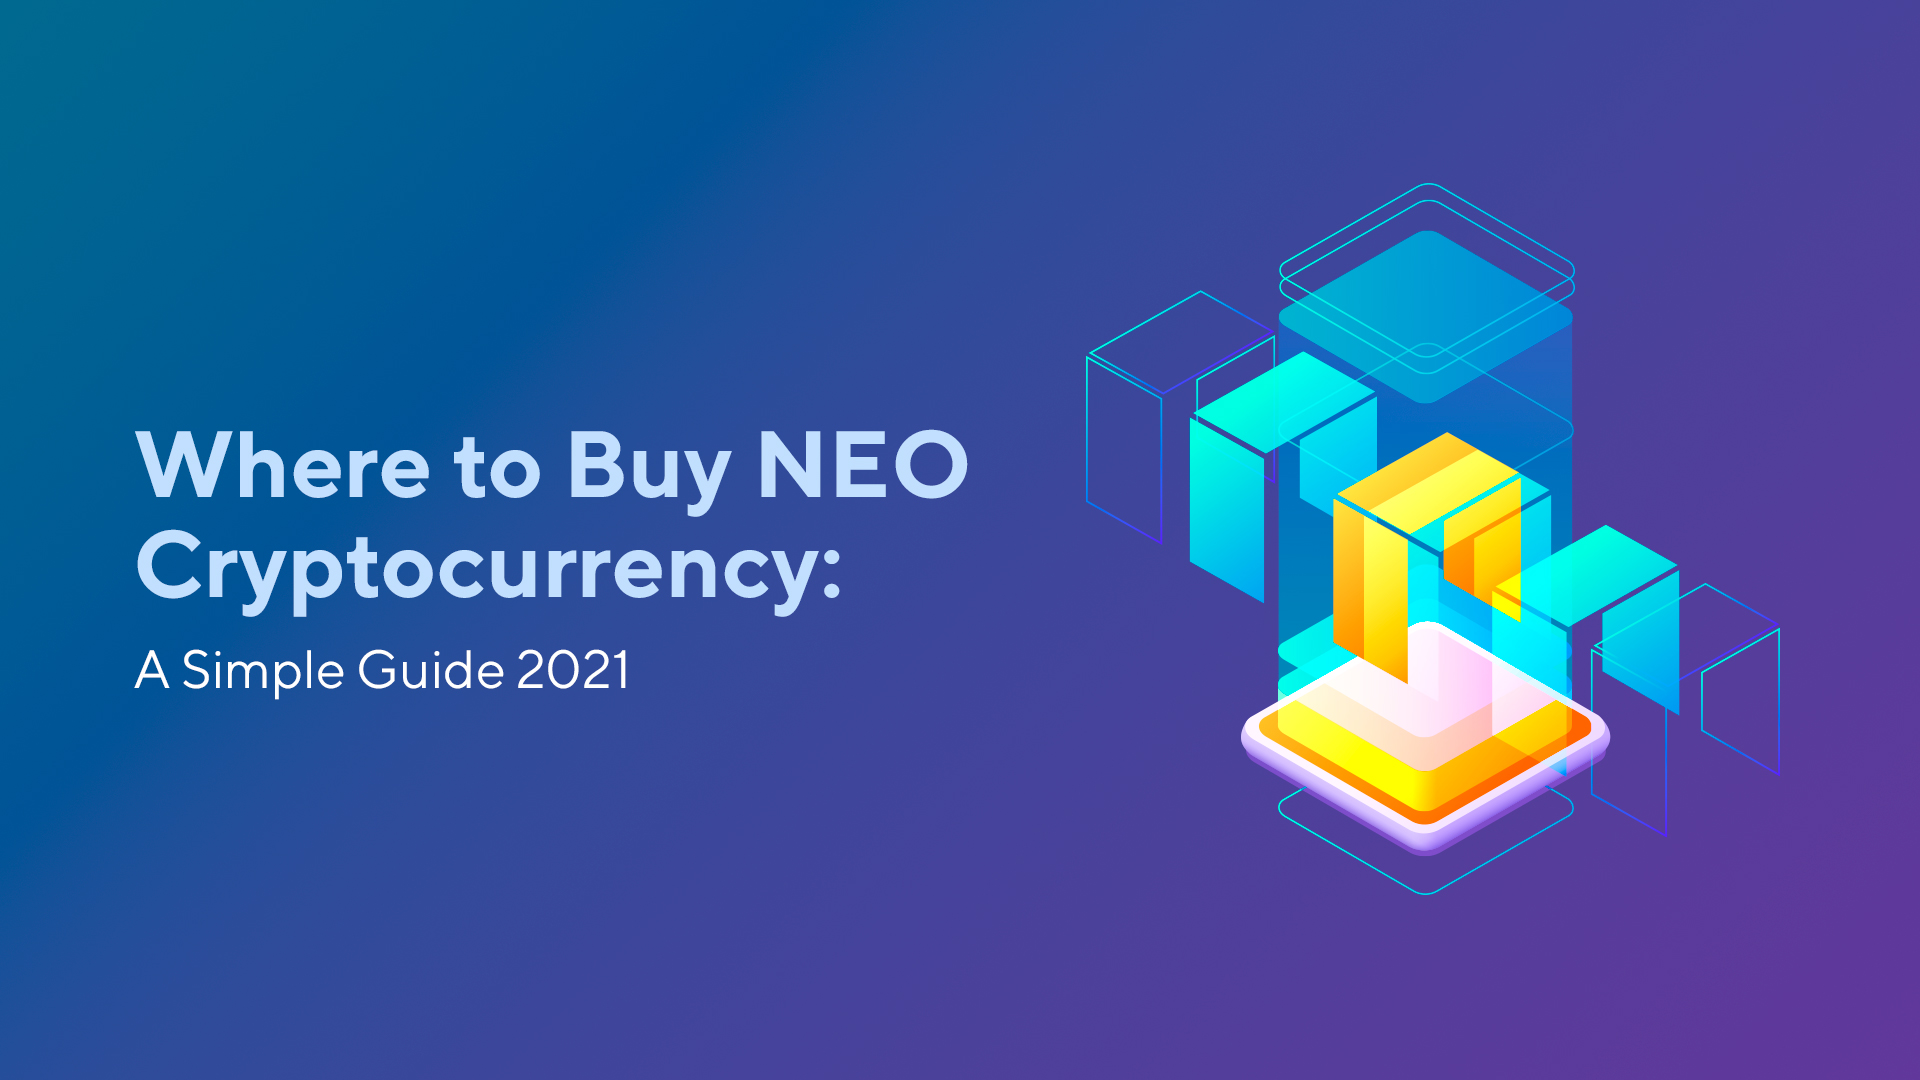 Where to Buy NEO Cryptocurrency: A Simple Guide 2021